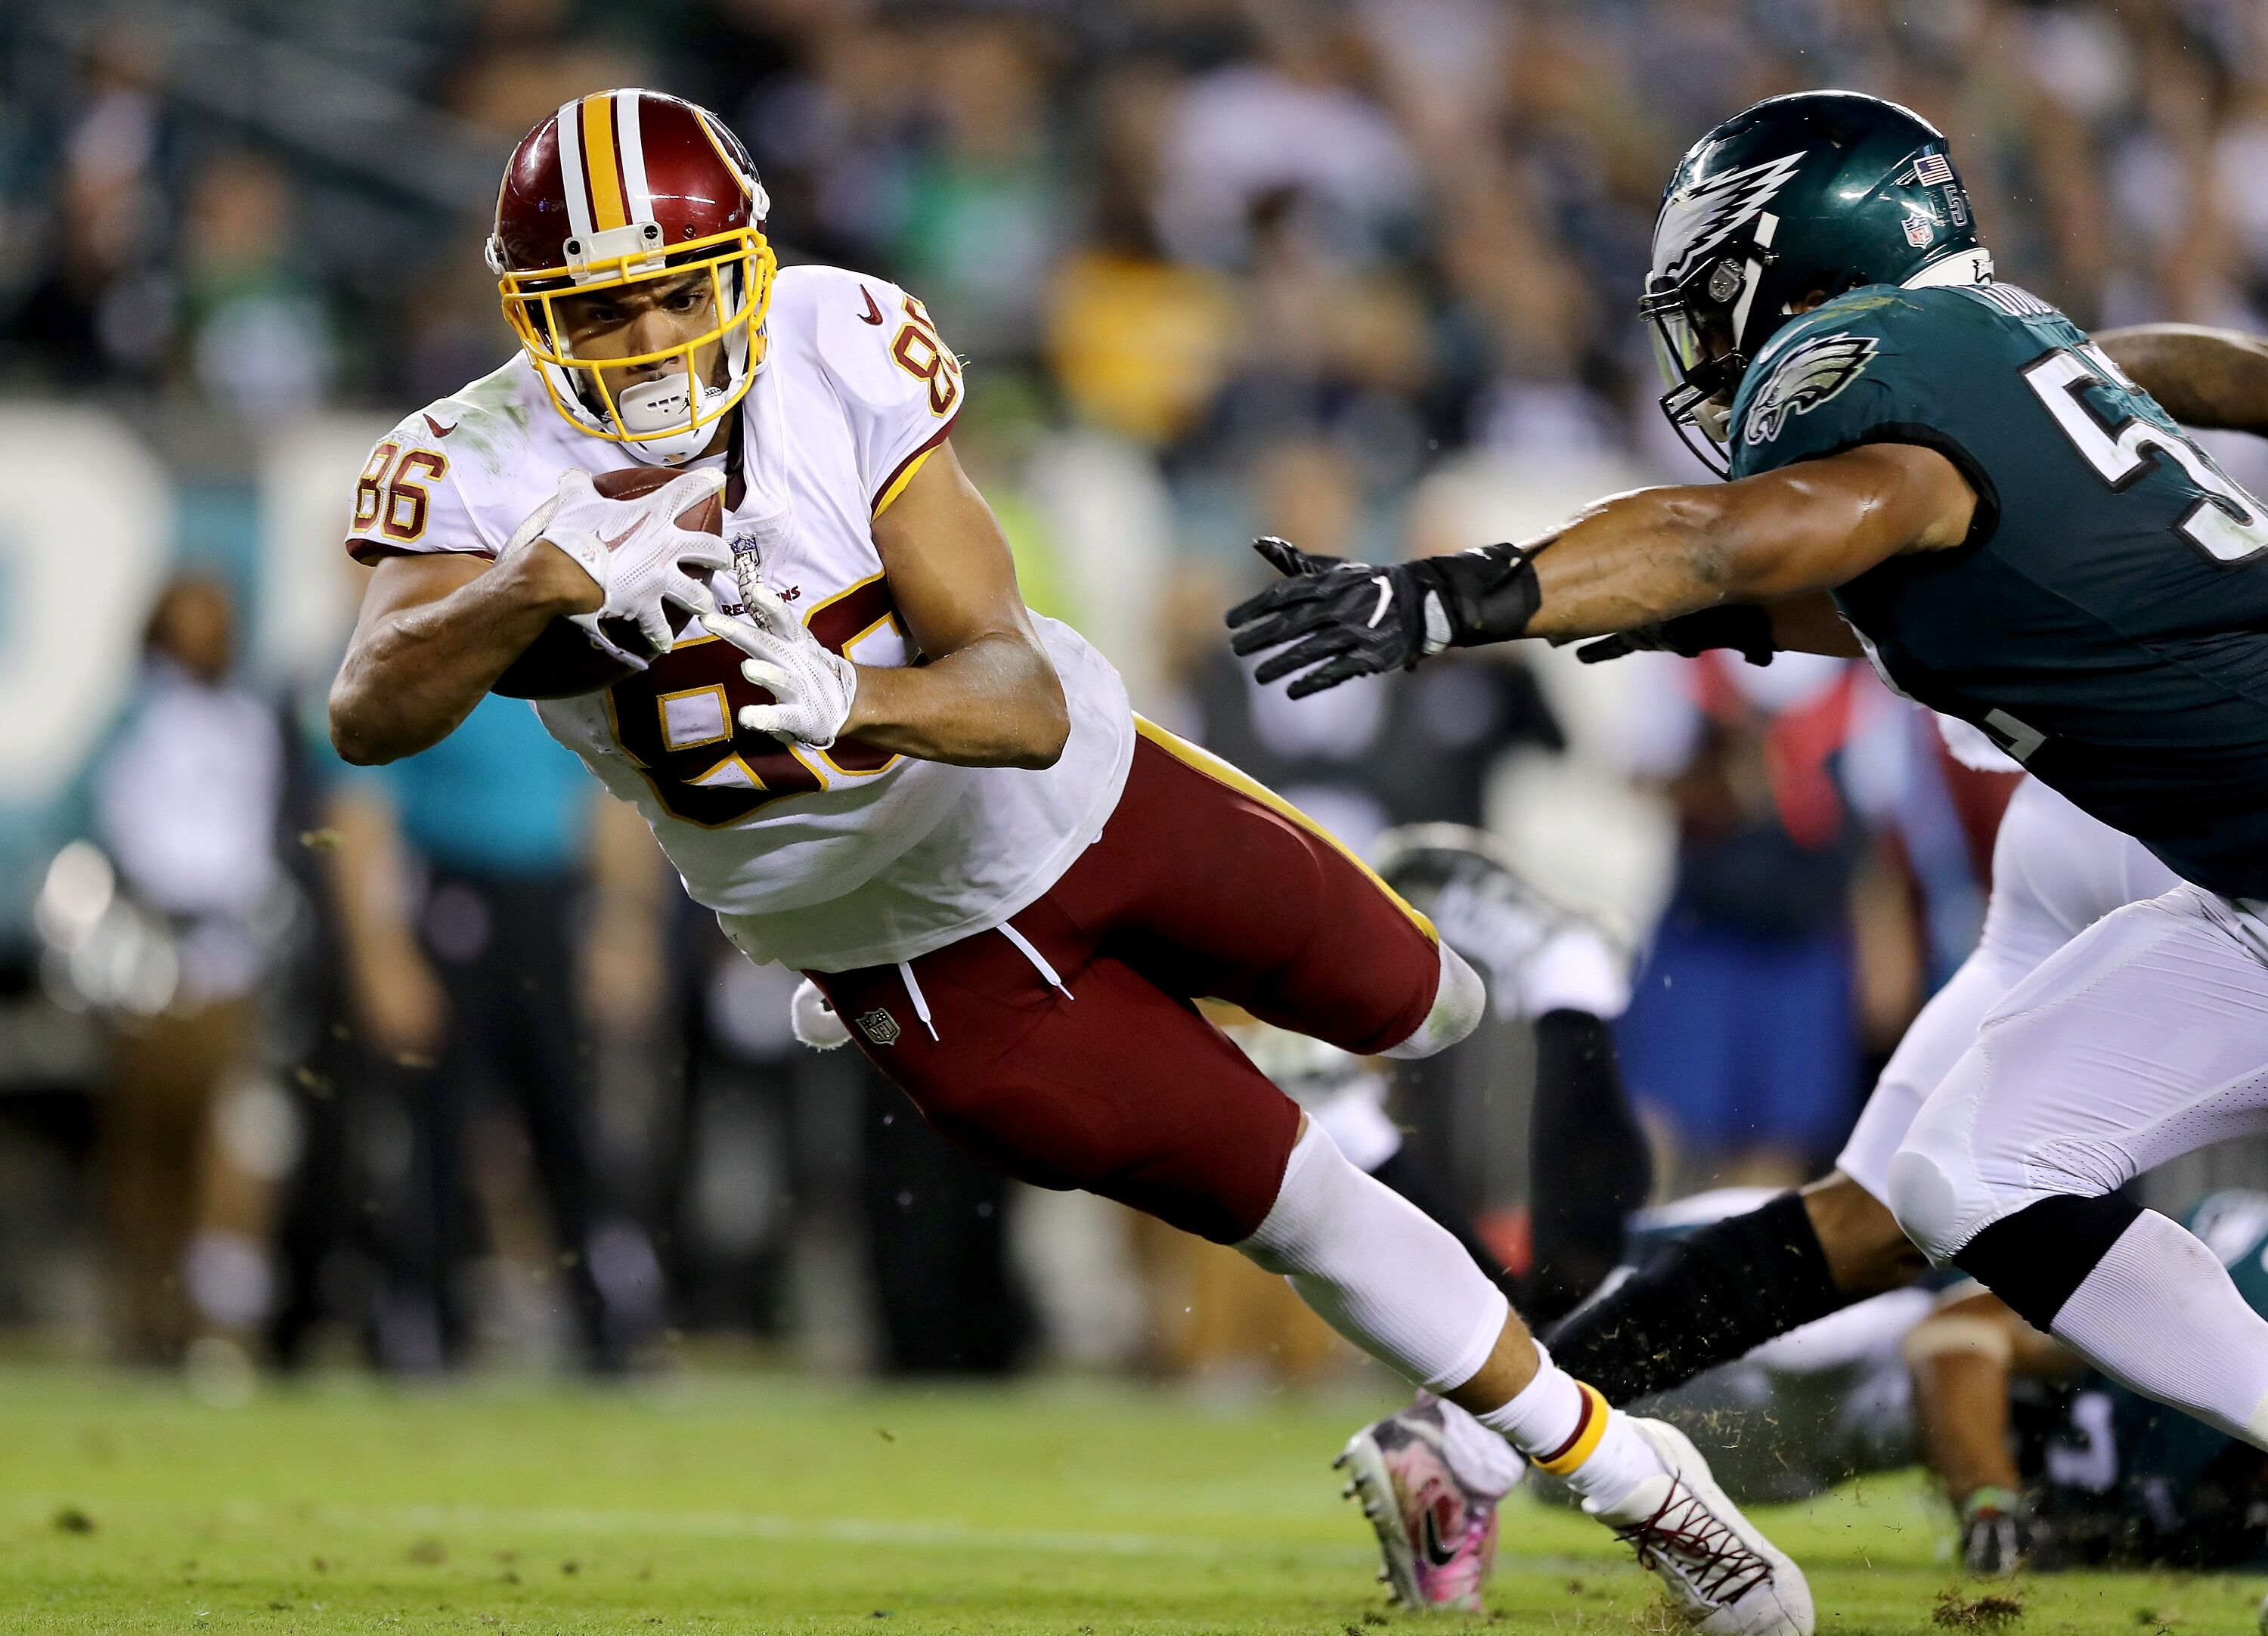 865614992-washington-redskins-v-philadelphia-eagles.jpg